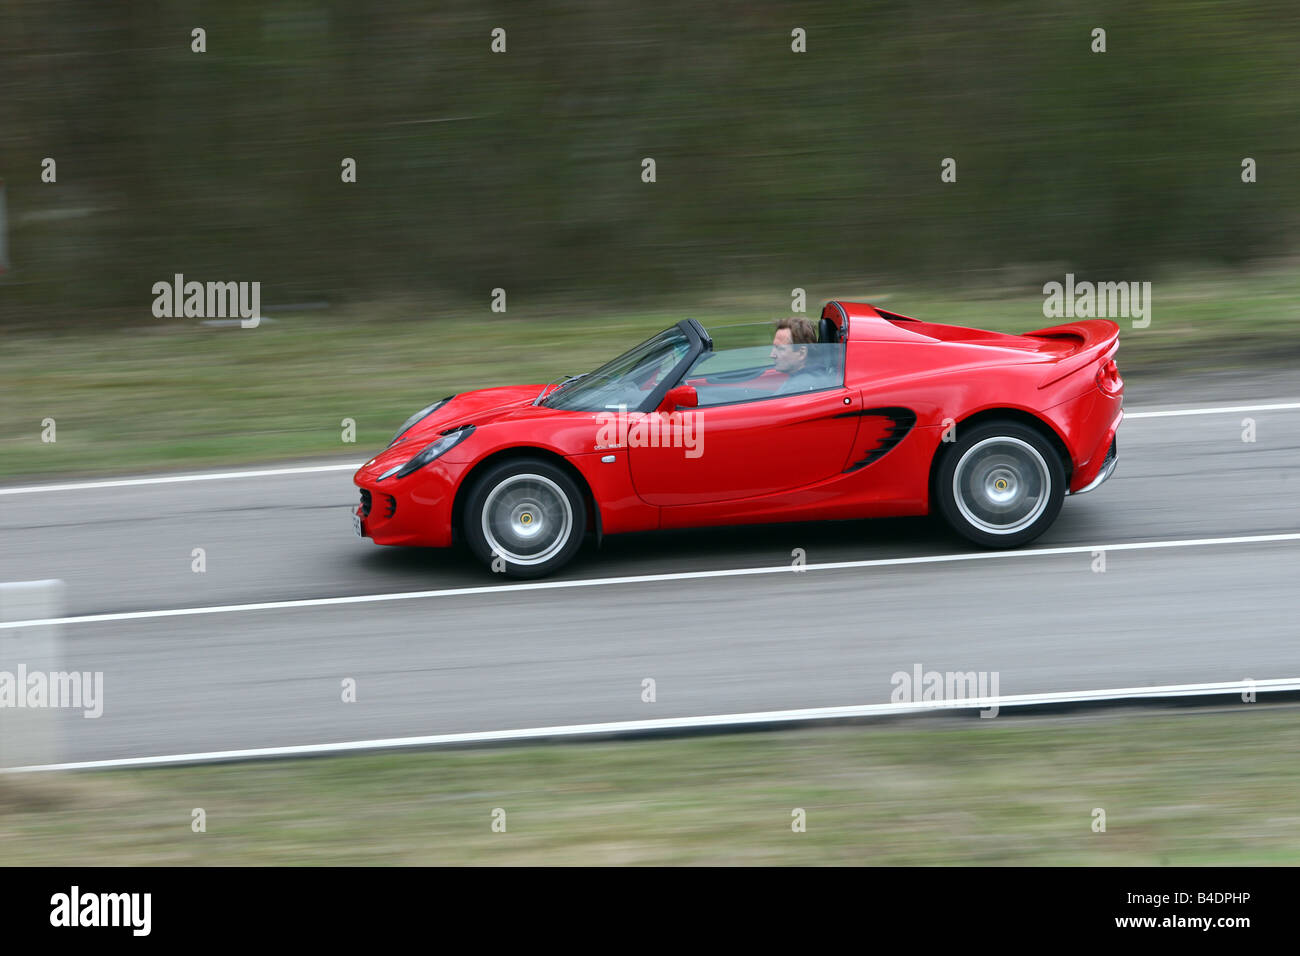 https://c8.alamy.com/comp/B4DPHP/lotus-elise-sc-model-year-2008-red-driving-side-view-country-road-B4DPHP.jpg